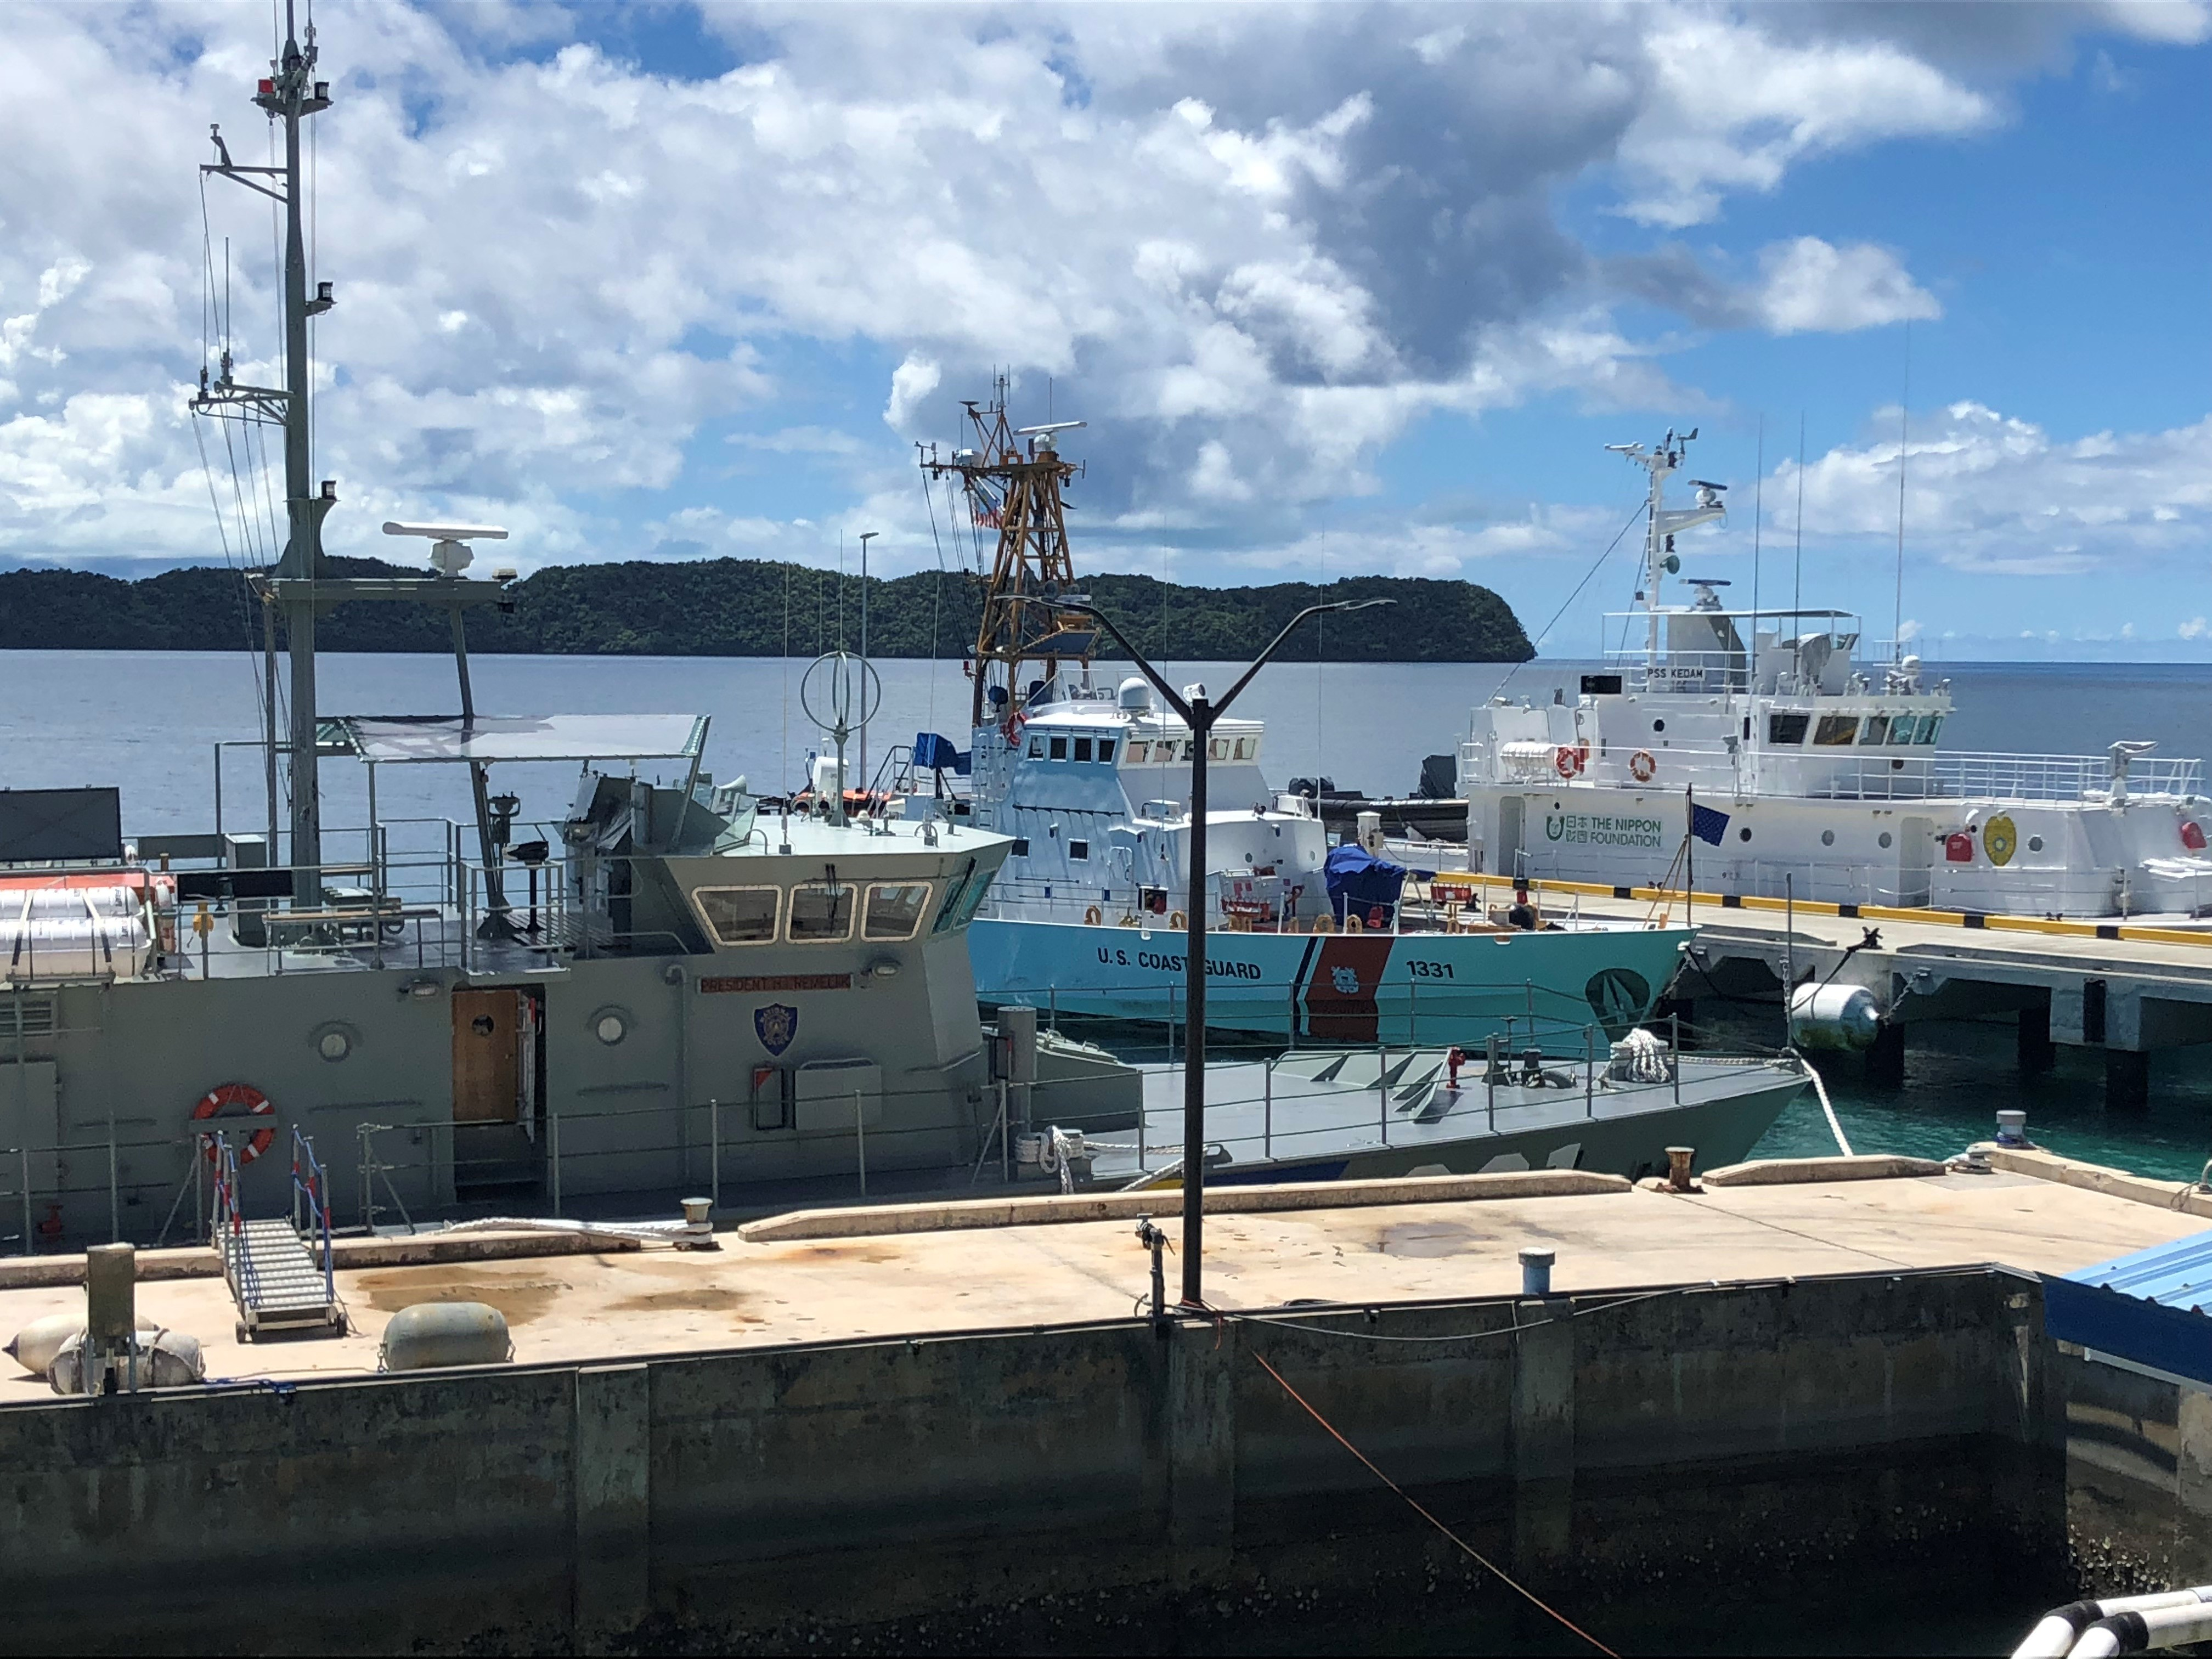 Palau says it will continue to address Illegal, Unreported and Unregulated fishing